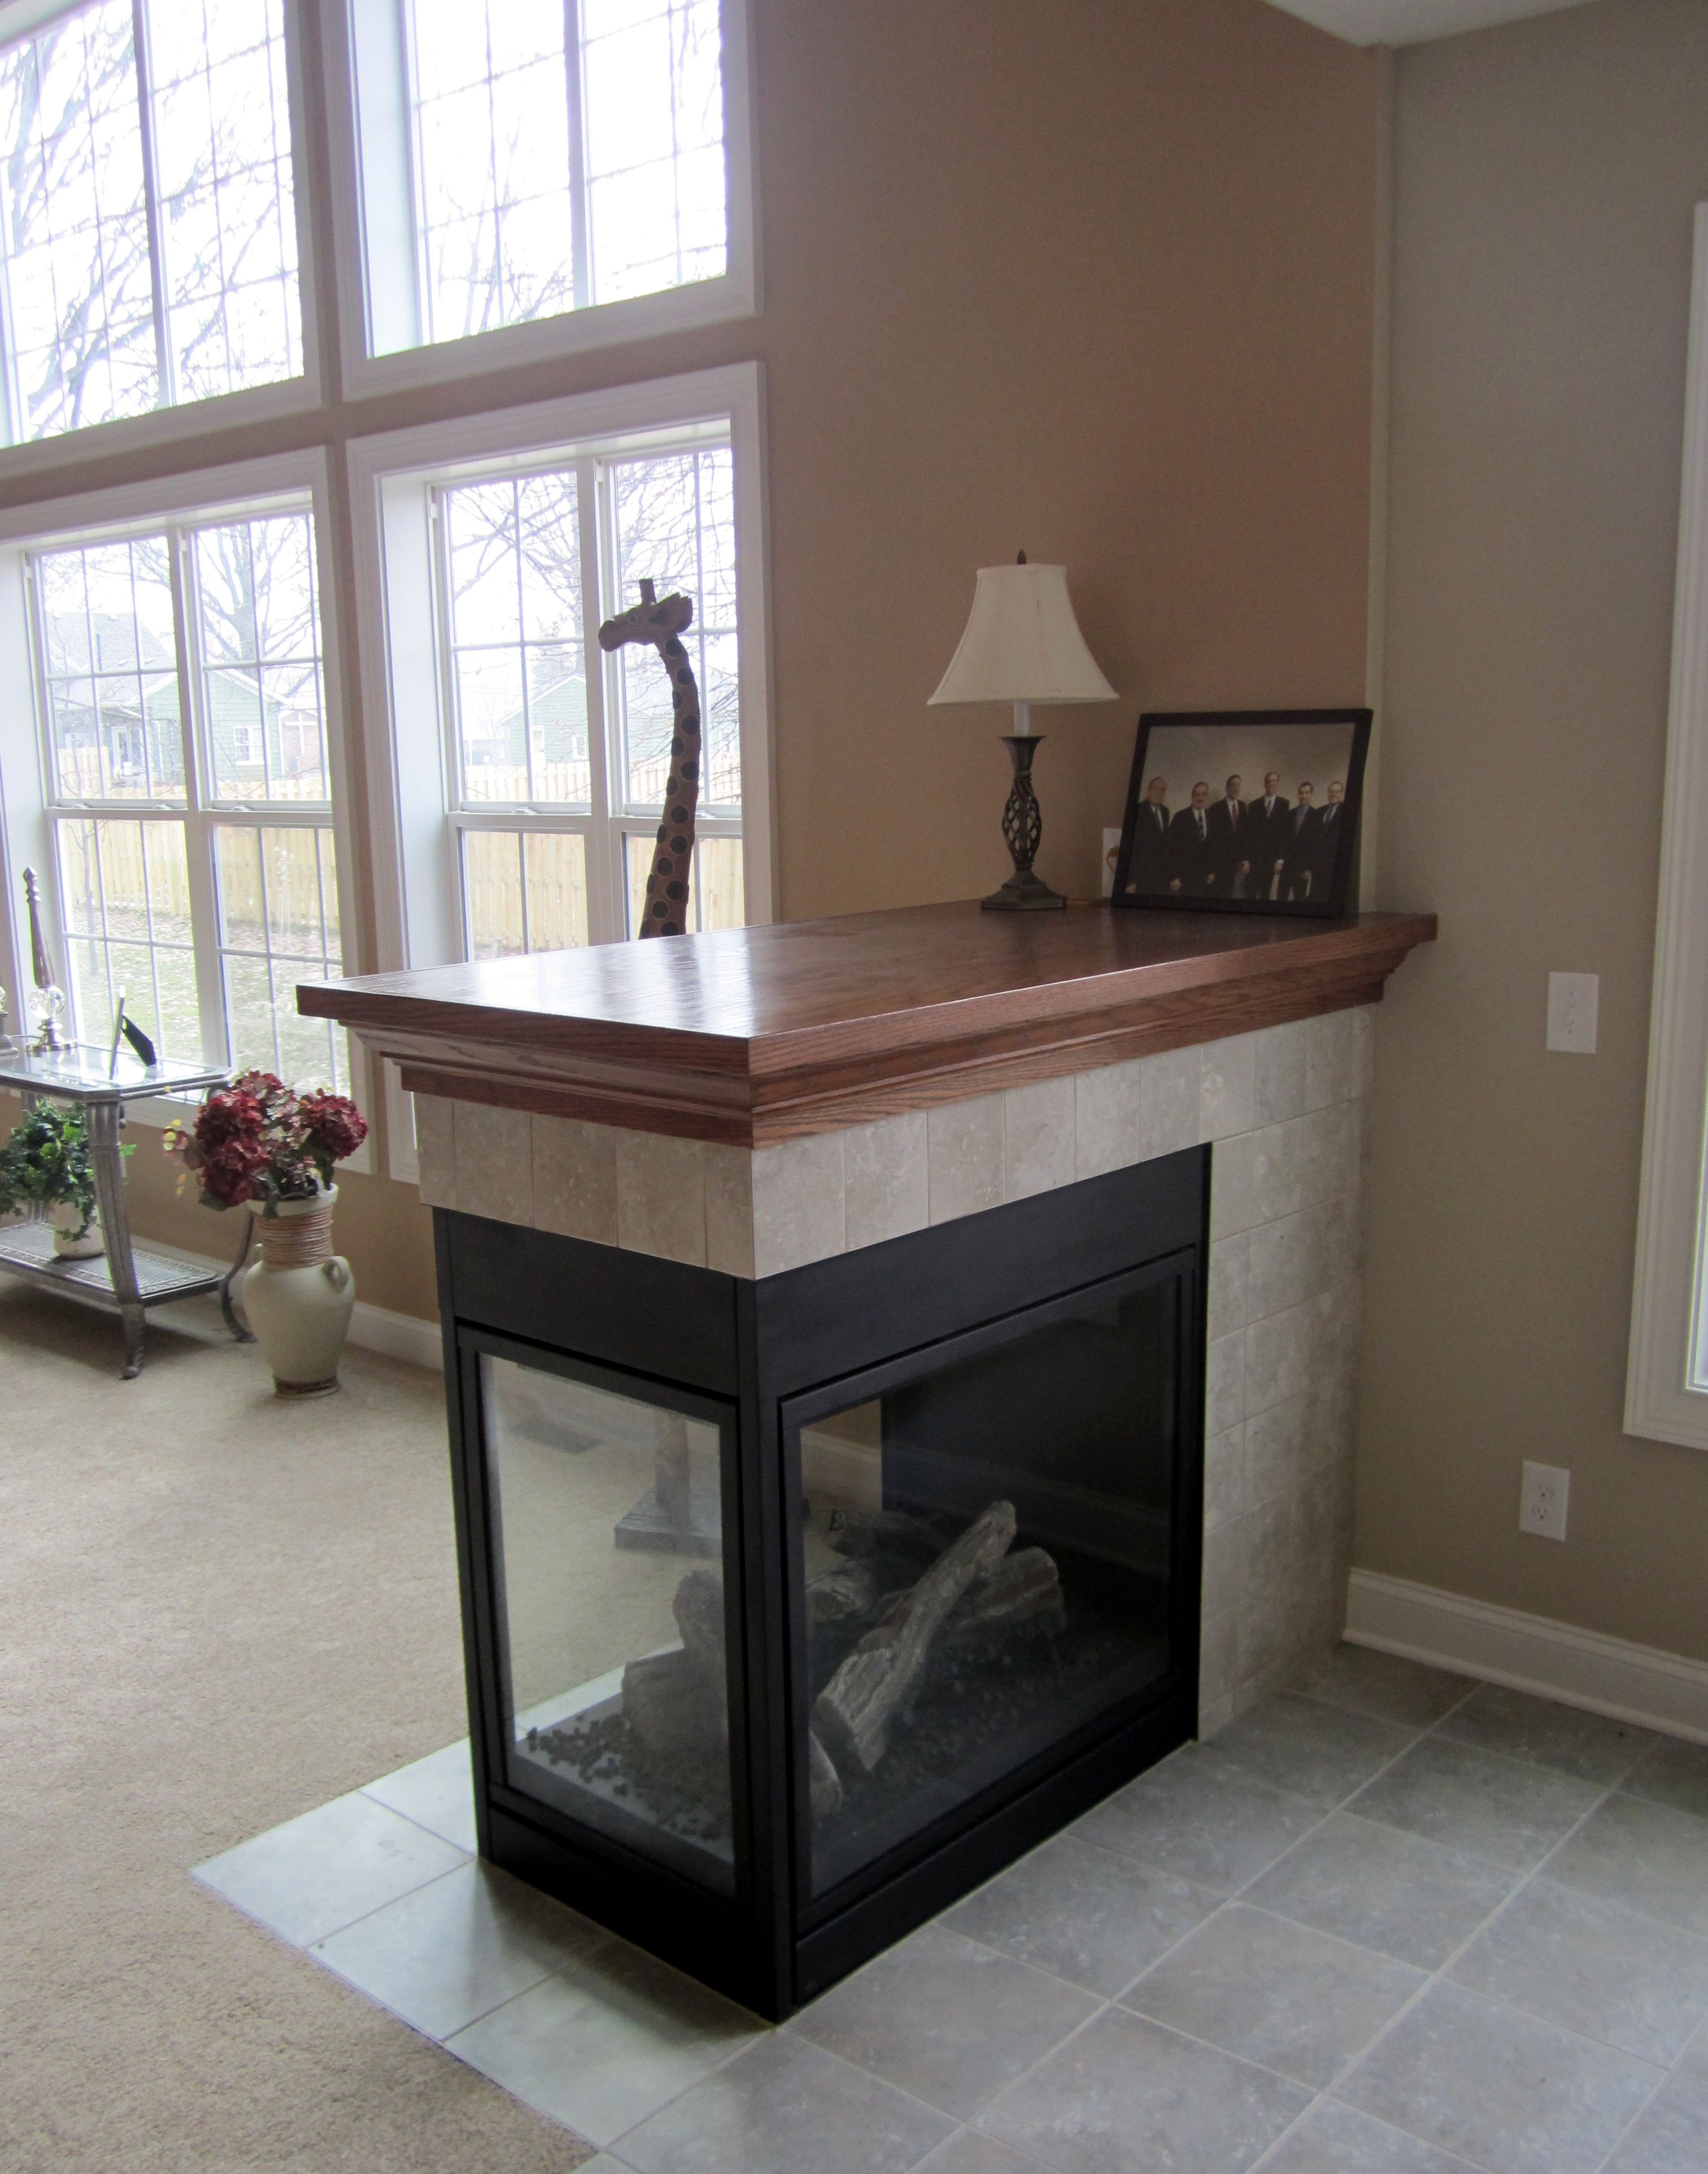 Three Sided Fireplace With Tile Surround And Oak Mantle